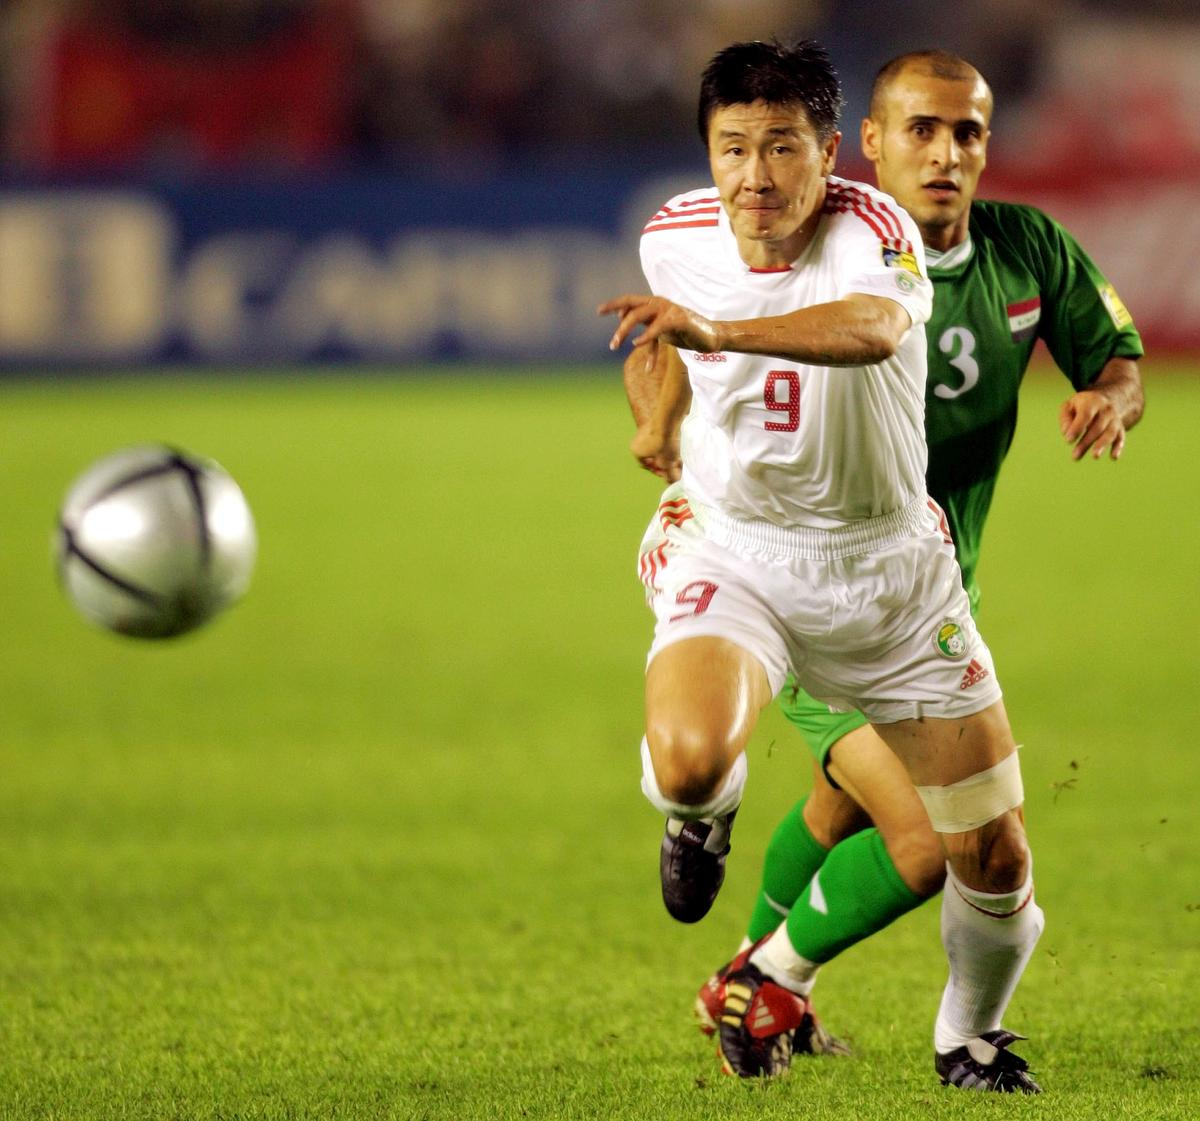 China says ex-soccer star's call for ouster of Communist Party is 'absurd'